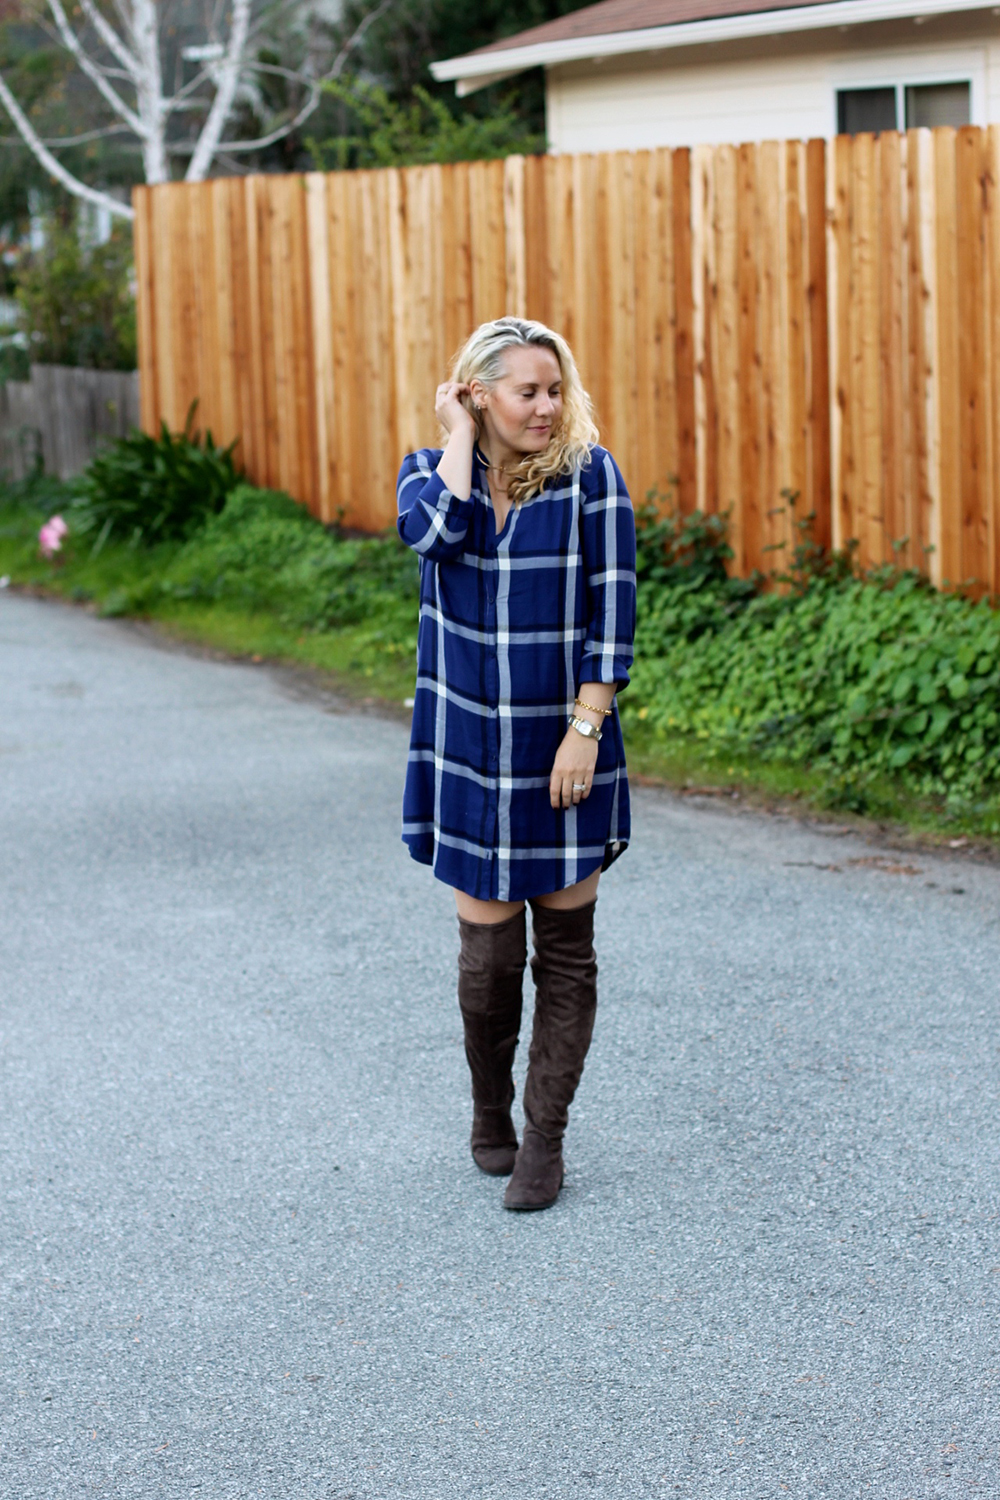 cupcakes-and-cashmere-plaid-shirtdress-outfit-inspiration-fall-fashion-mom-style-have-need-want-3